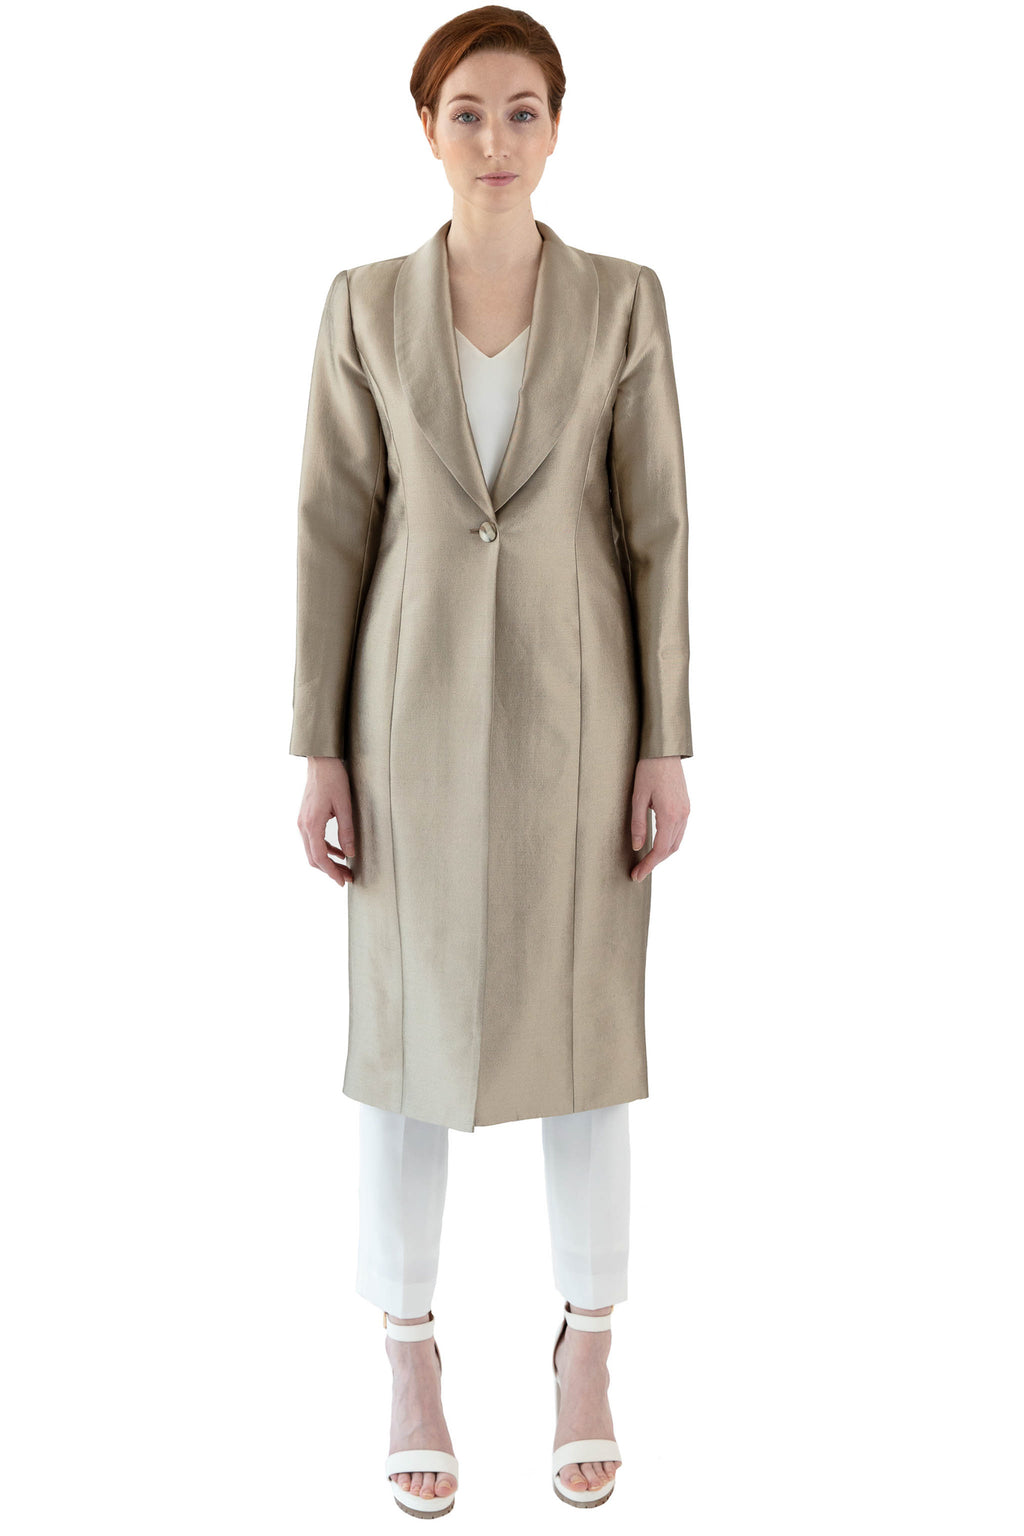 Women's gold coat with shawl collar